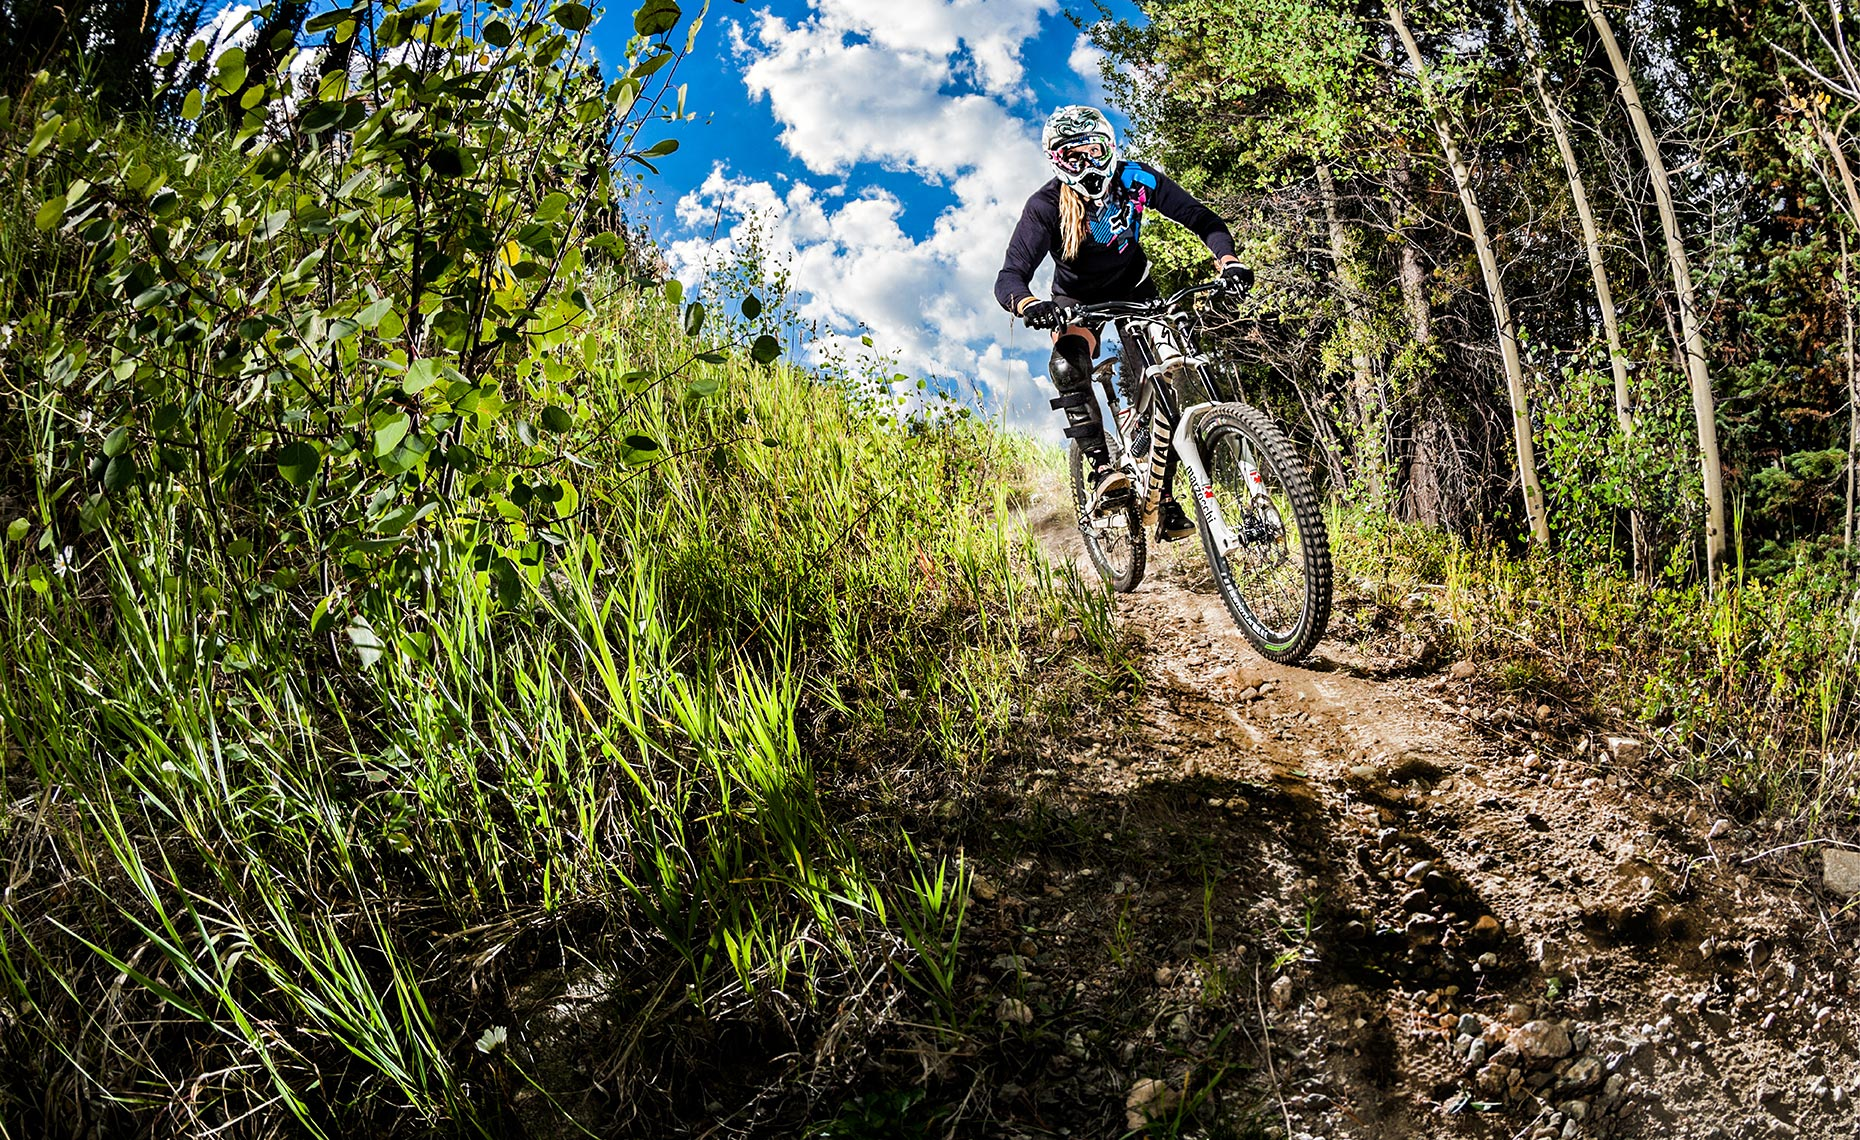 07_Jackie_Thomas_Winter_Park_Colorado_Trestle_Bike_Mountain_Biking_Chris_Wellhausen_Photography.JPG